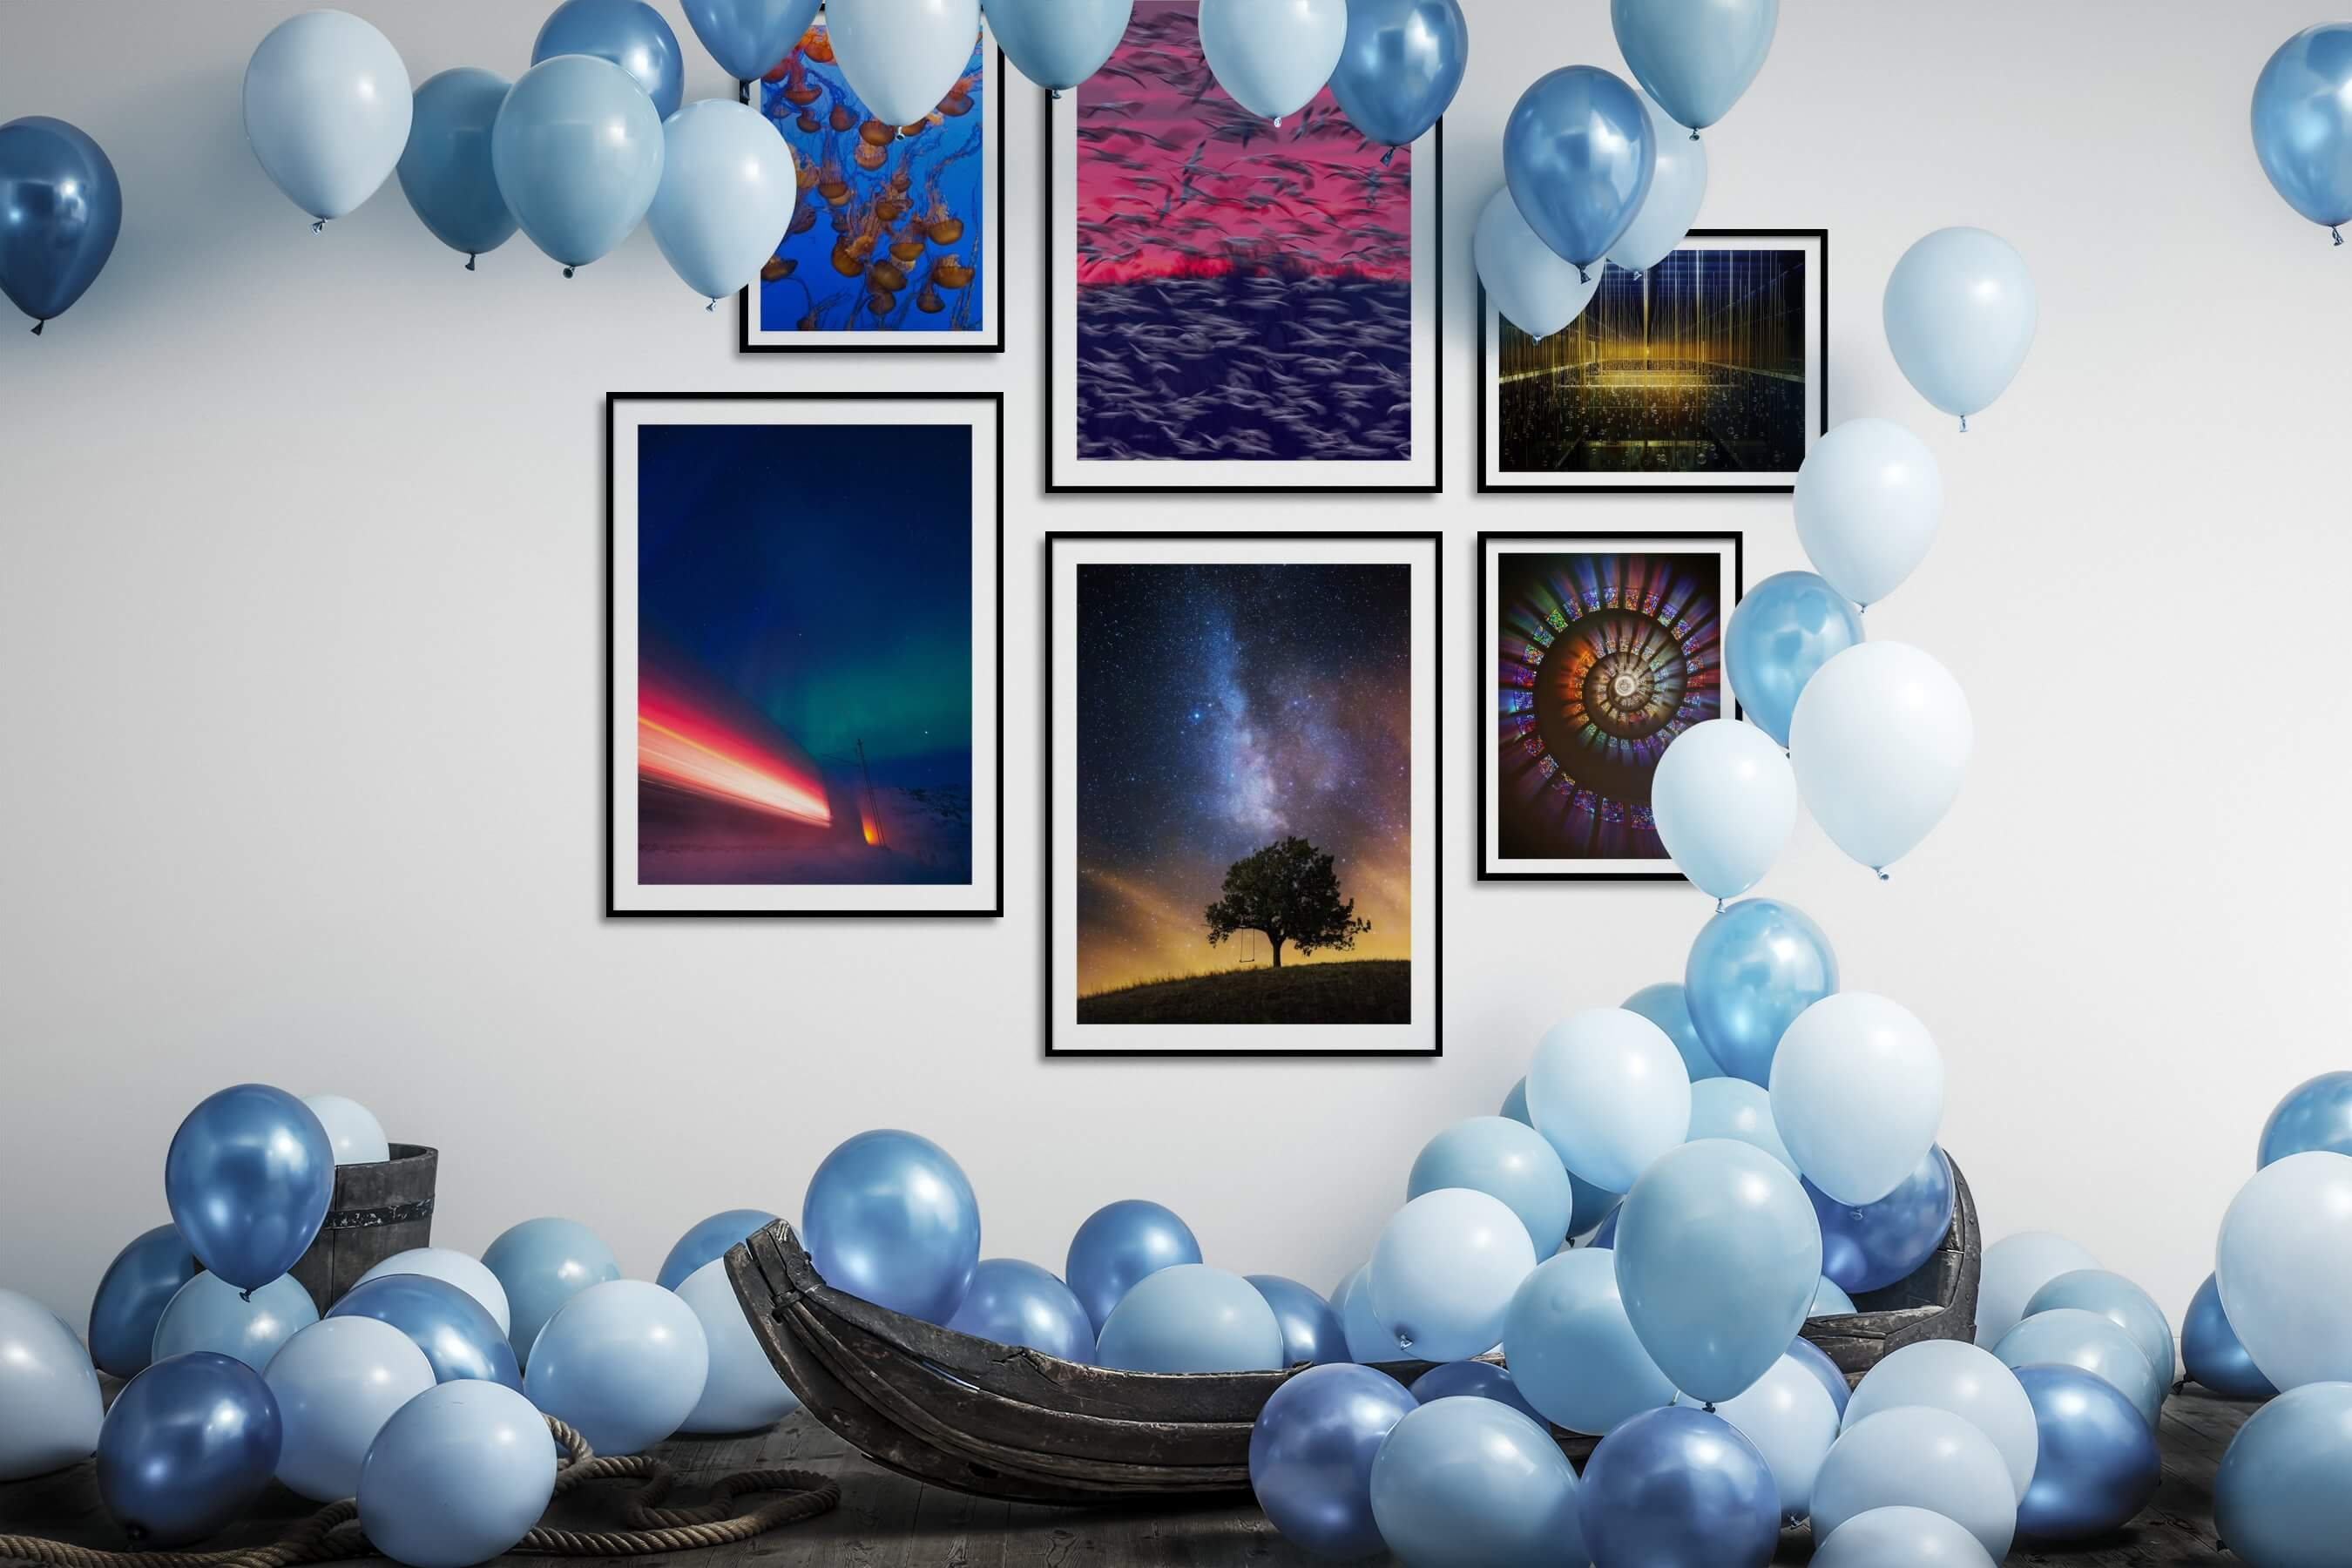 Gallery wall idea with six framed pictures arranged on a wall depicting Animals, Beach & Water, For the Maximalist, For the Minimalist, Country Life, and Colorful